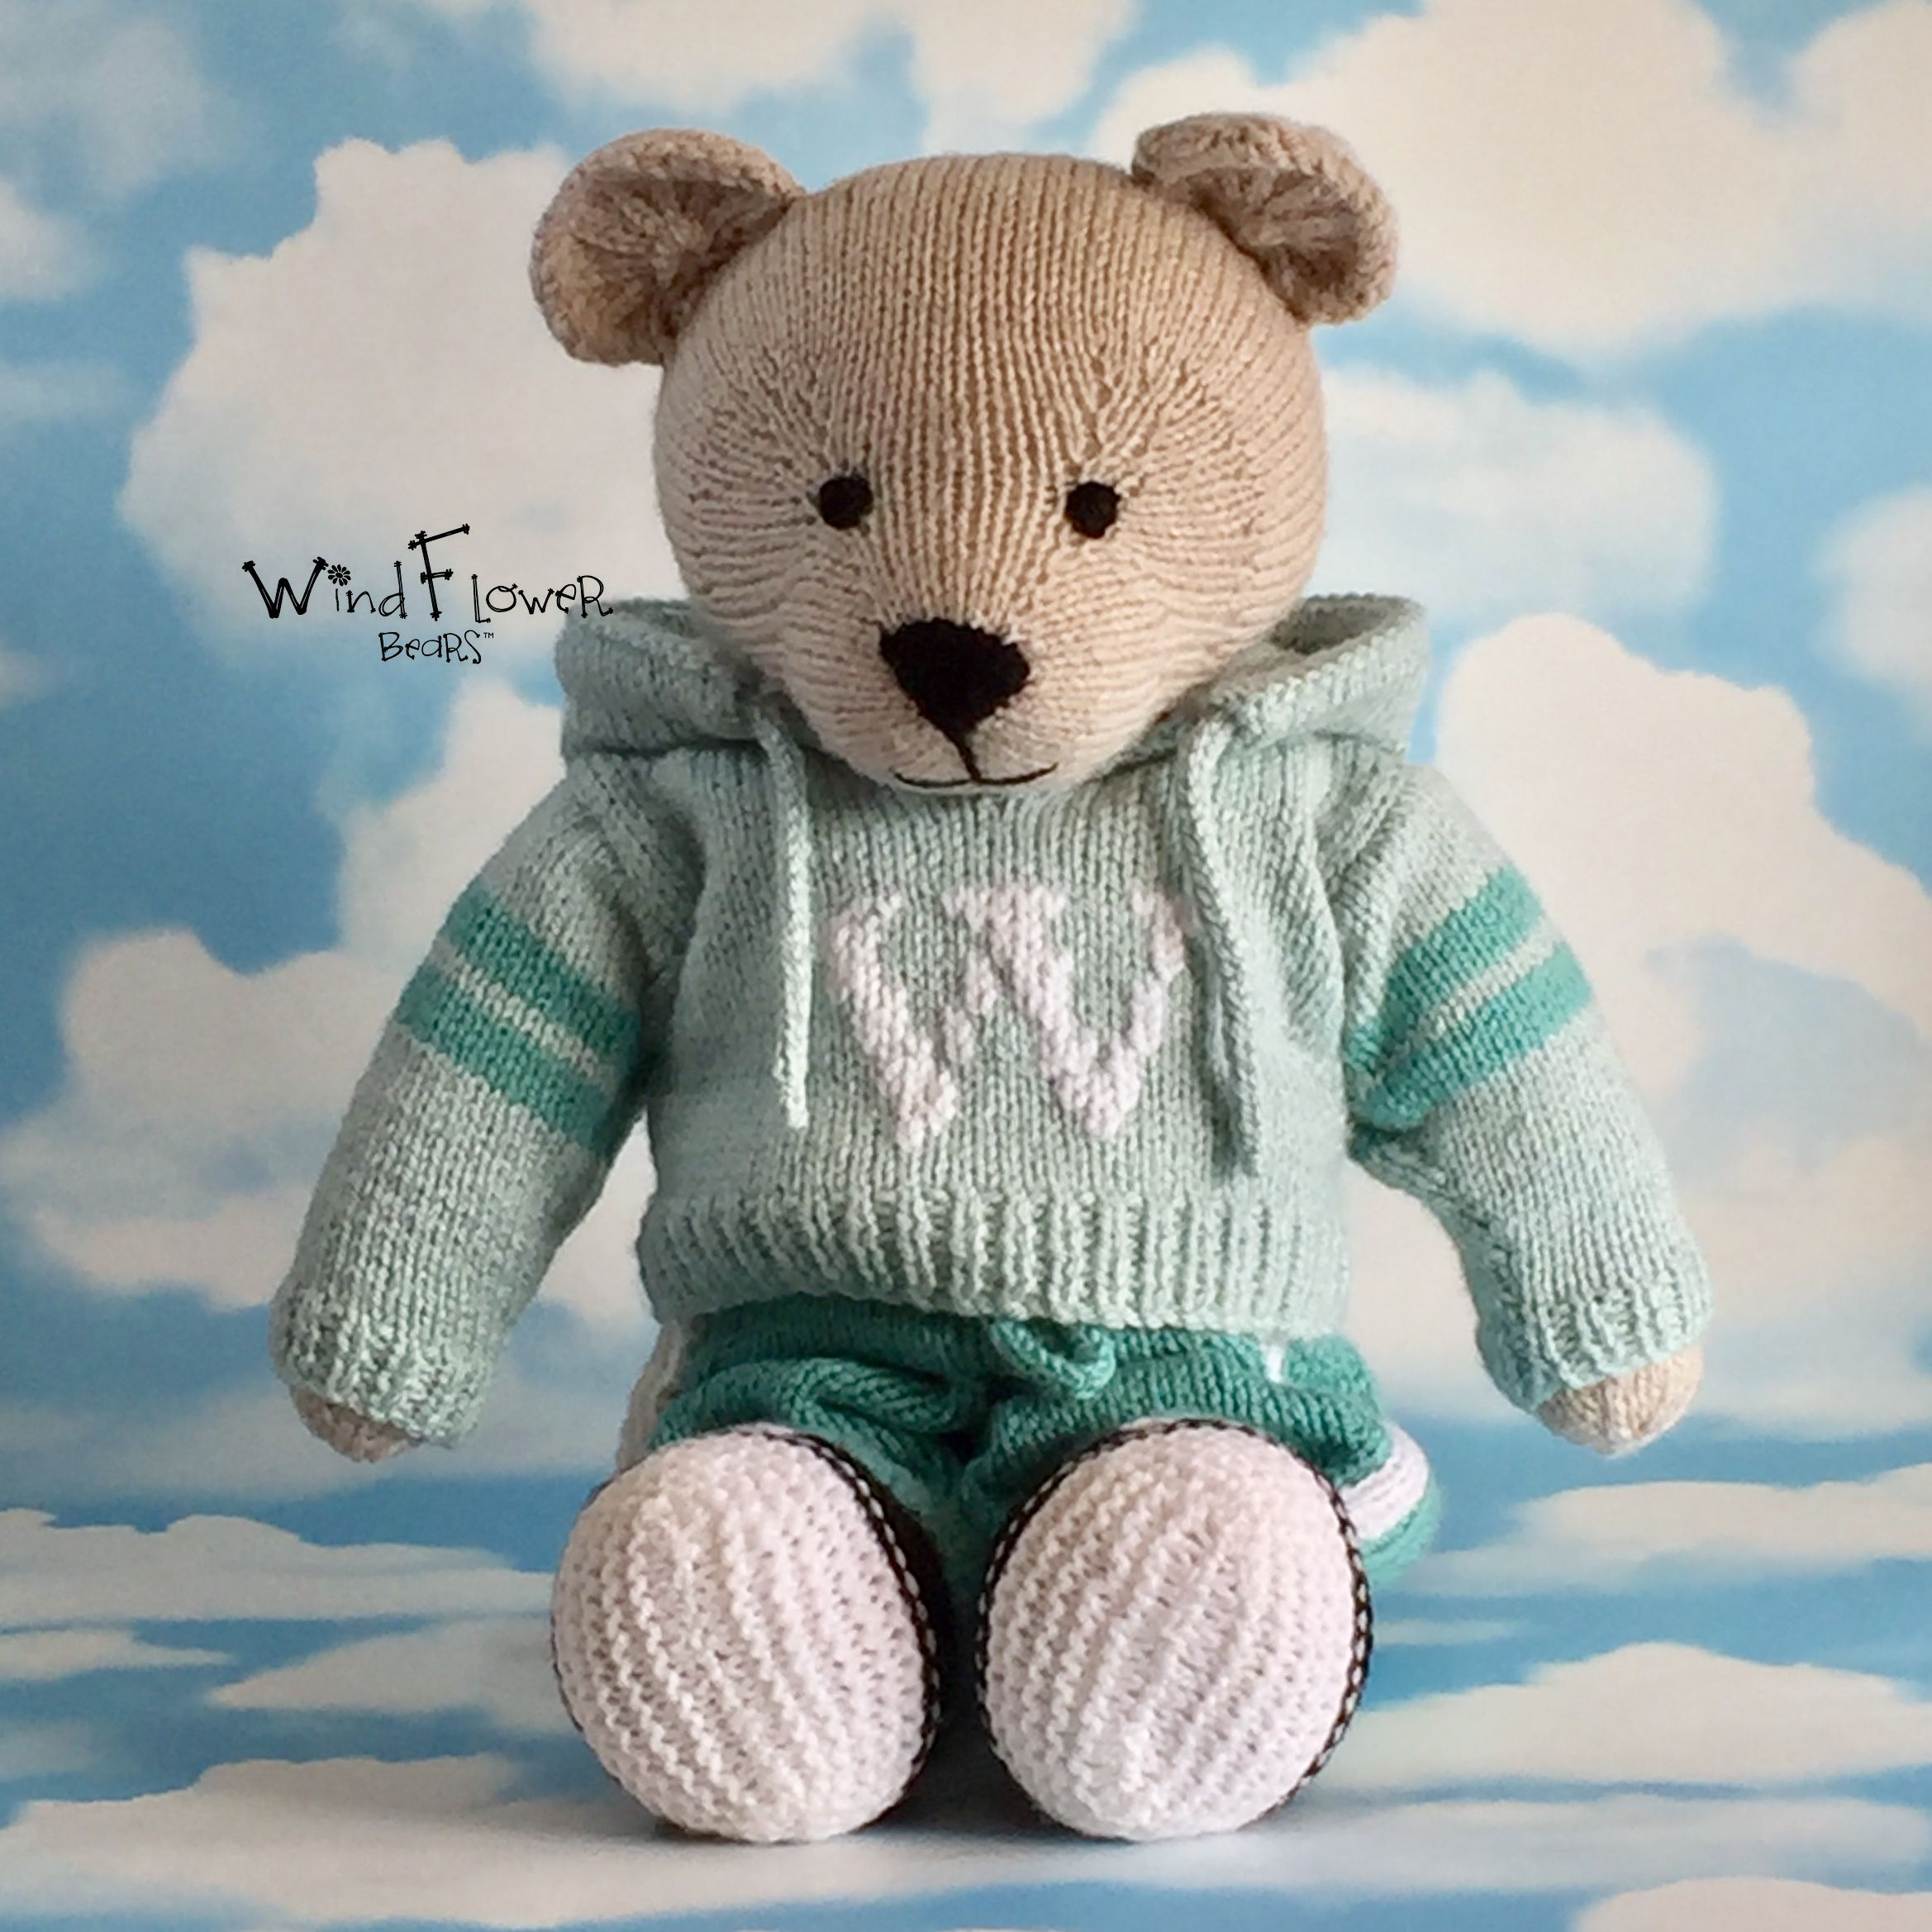 gift knitted handmade teddy